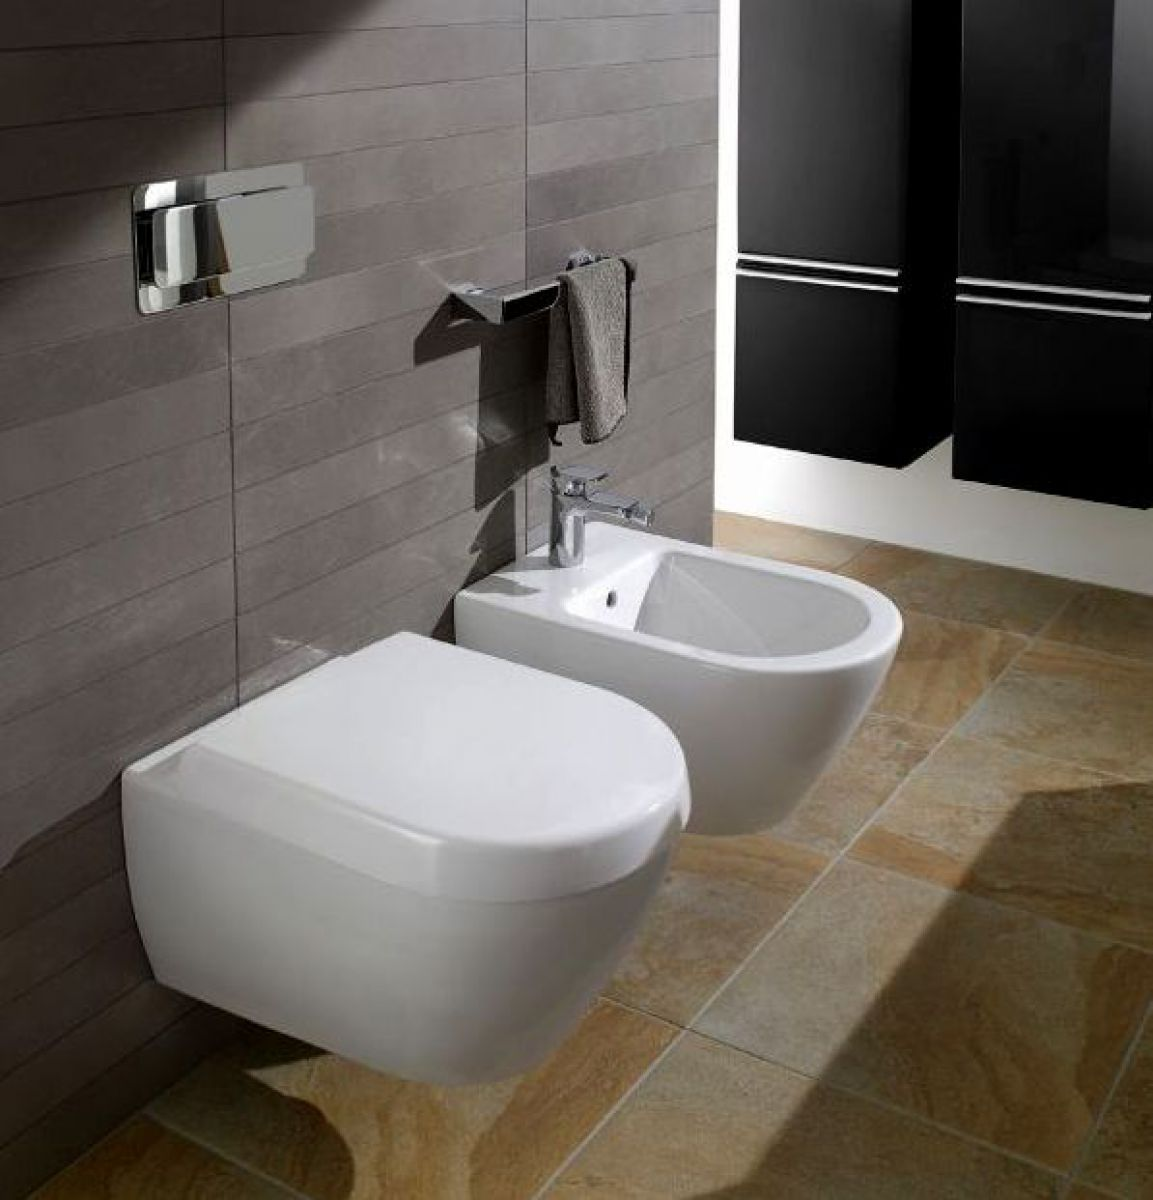 Villeroy and boch bathroom sink -  Villeroy Boch Subway 2 0 Wall Mounted